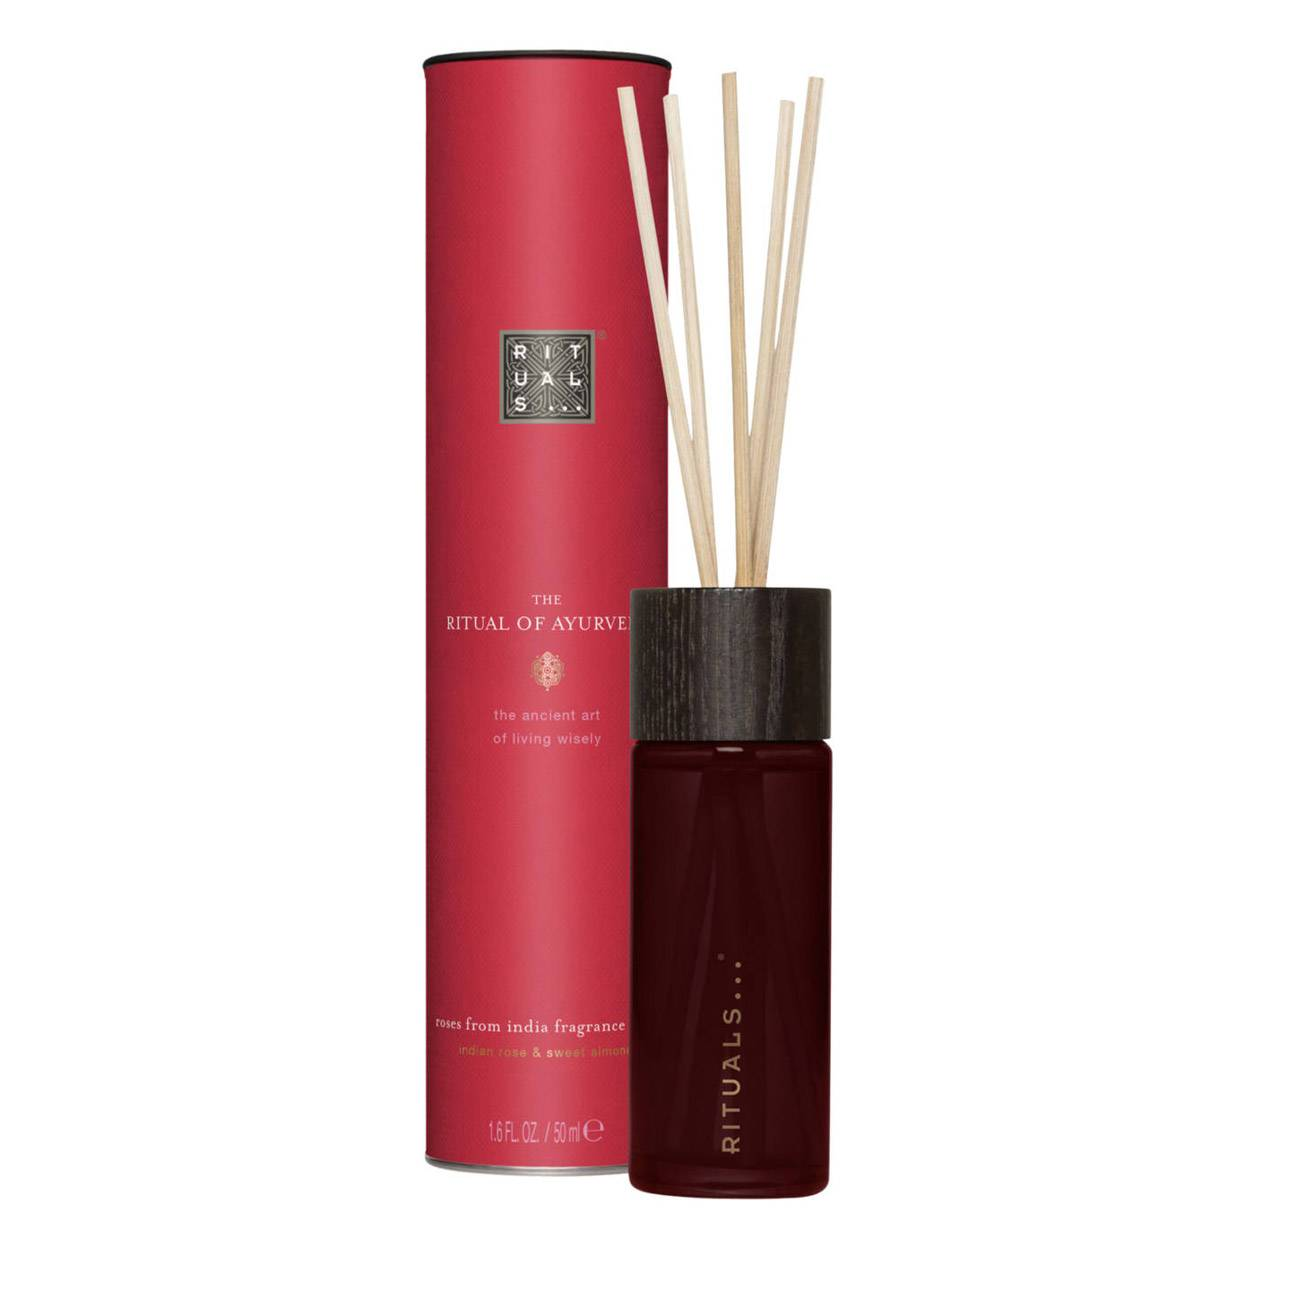 THE RITUAL OF AYURVEDA MINI FRAGRANCE STICKS 50 Ml imagine produs